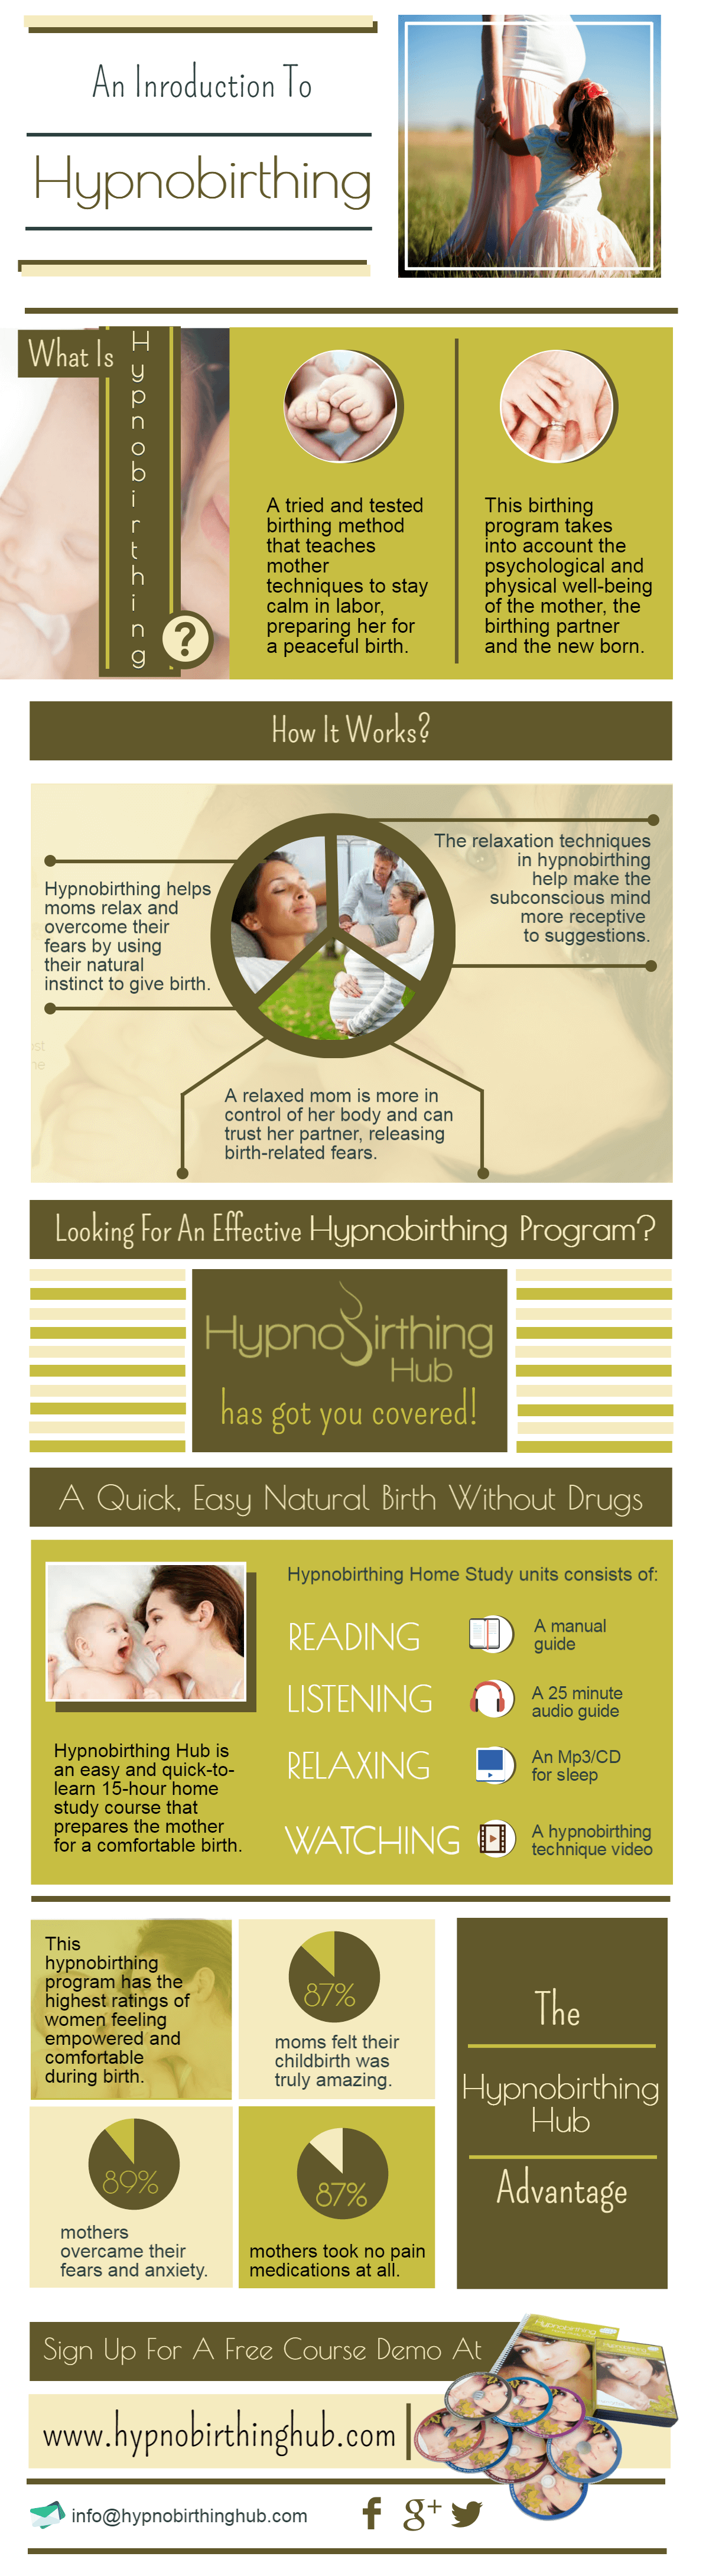 An Introduction To Hypnobirthing Infographic